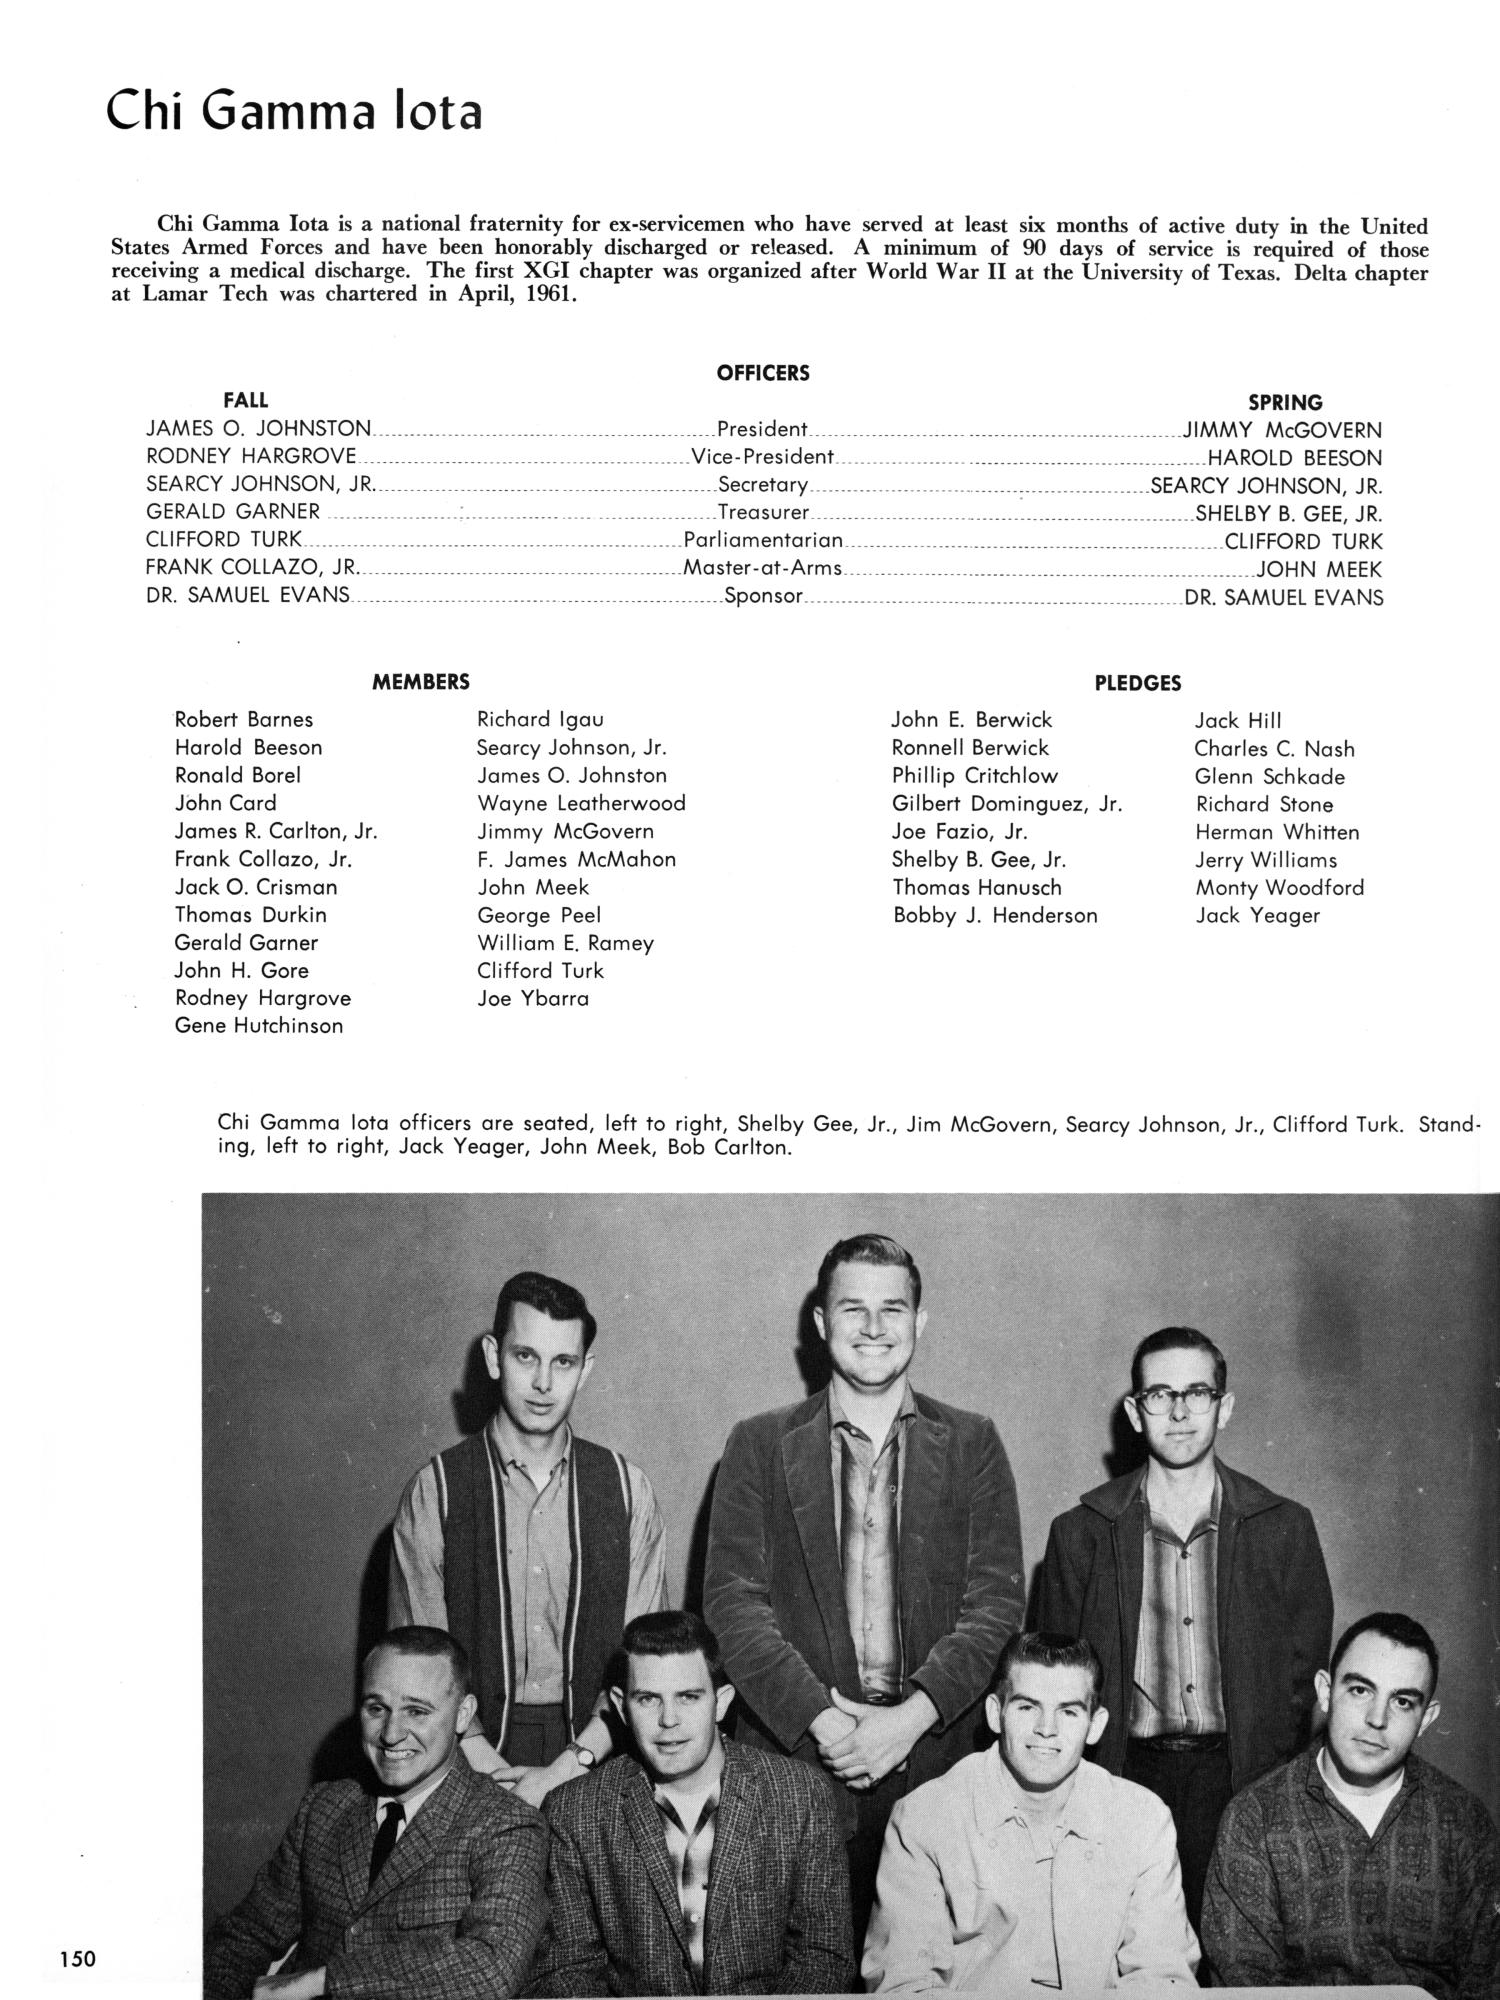 Chapter 61 medical discharge - The Cardinal Yearbook Of Lamar State College Of Technology 1962 Page 150 The Portal To Texas History